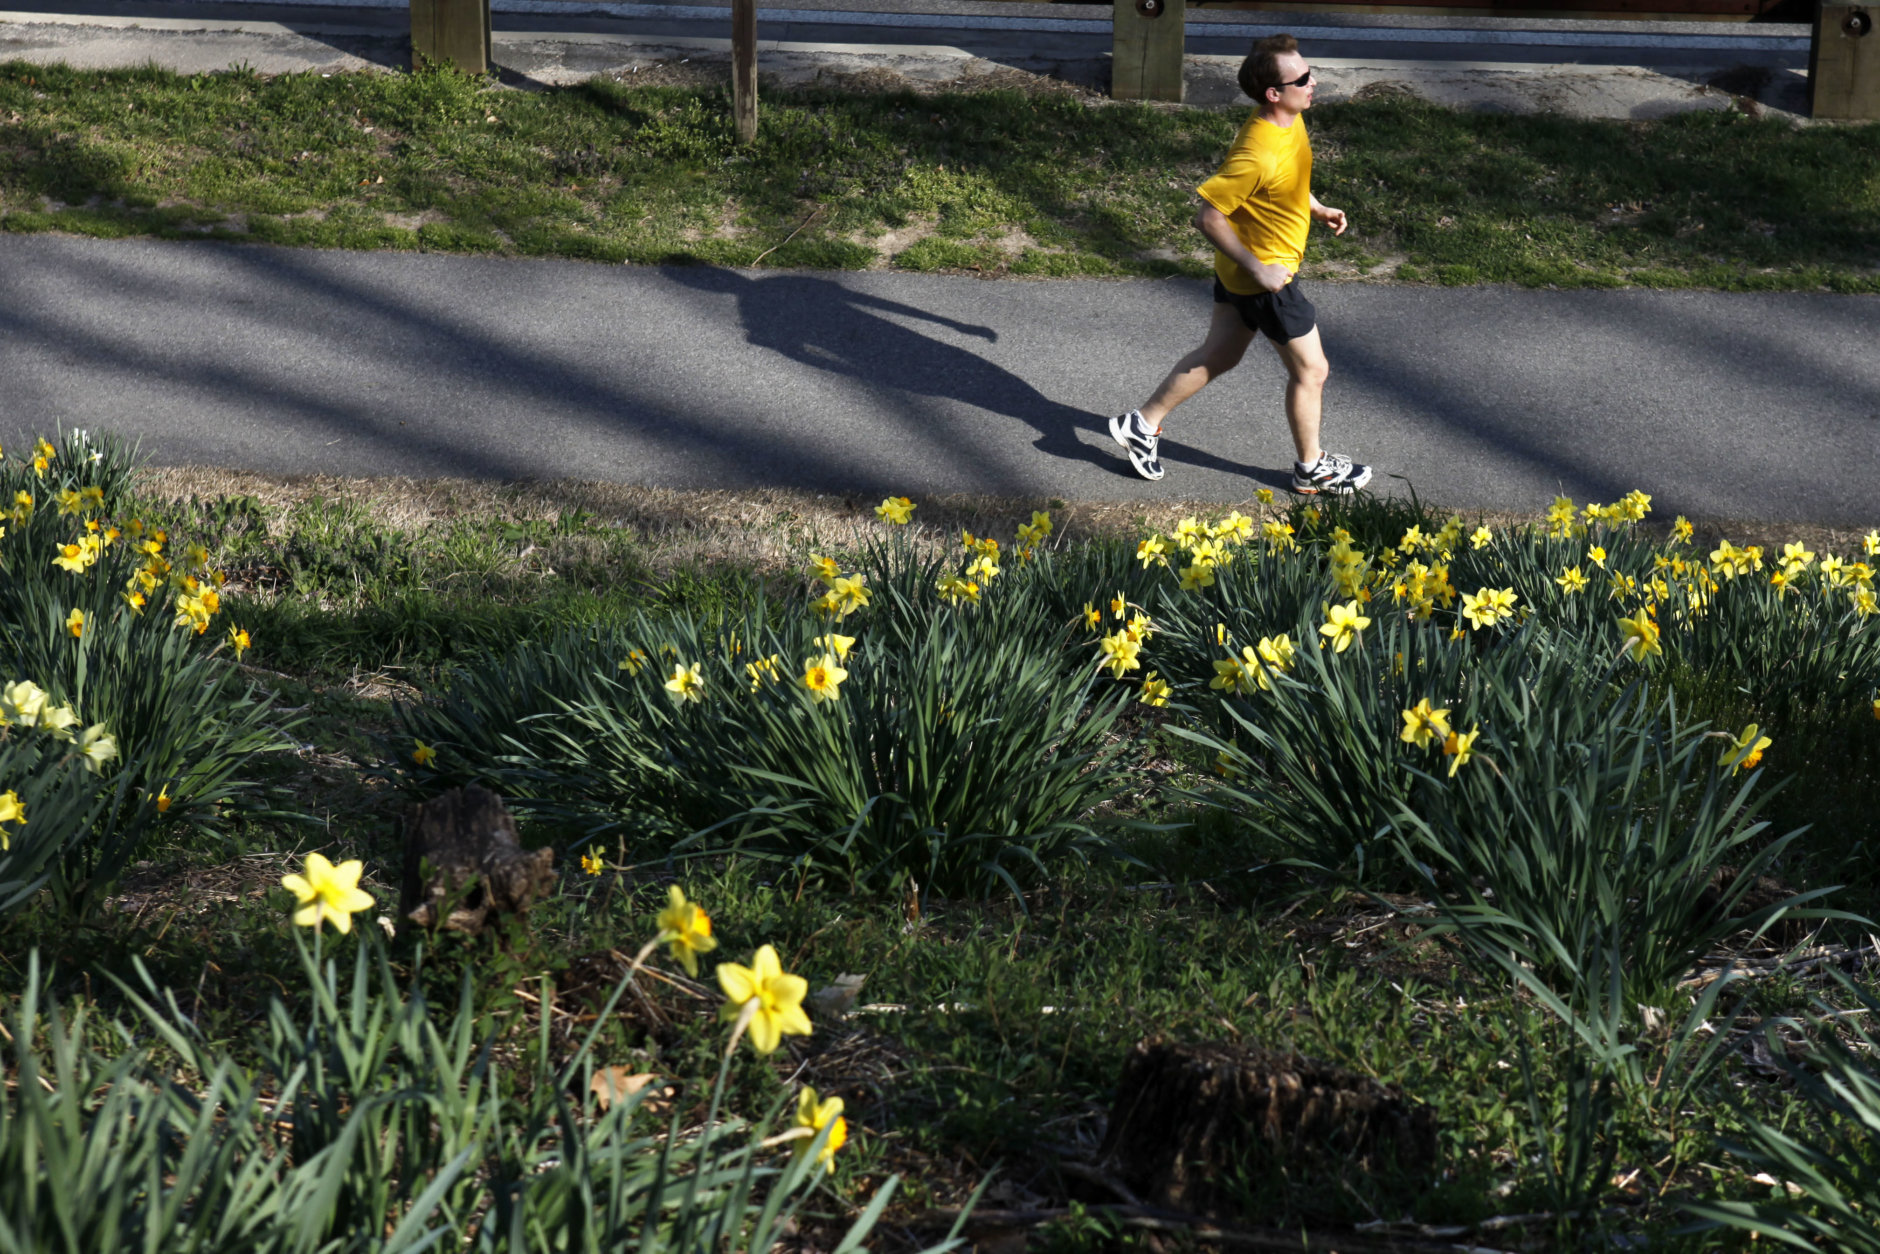 A man runs past blooming daffodils along Rock Creek Park in Washington, on Tuesday, March 13, 2012. (AP Photo/Jacquelyn Martin)